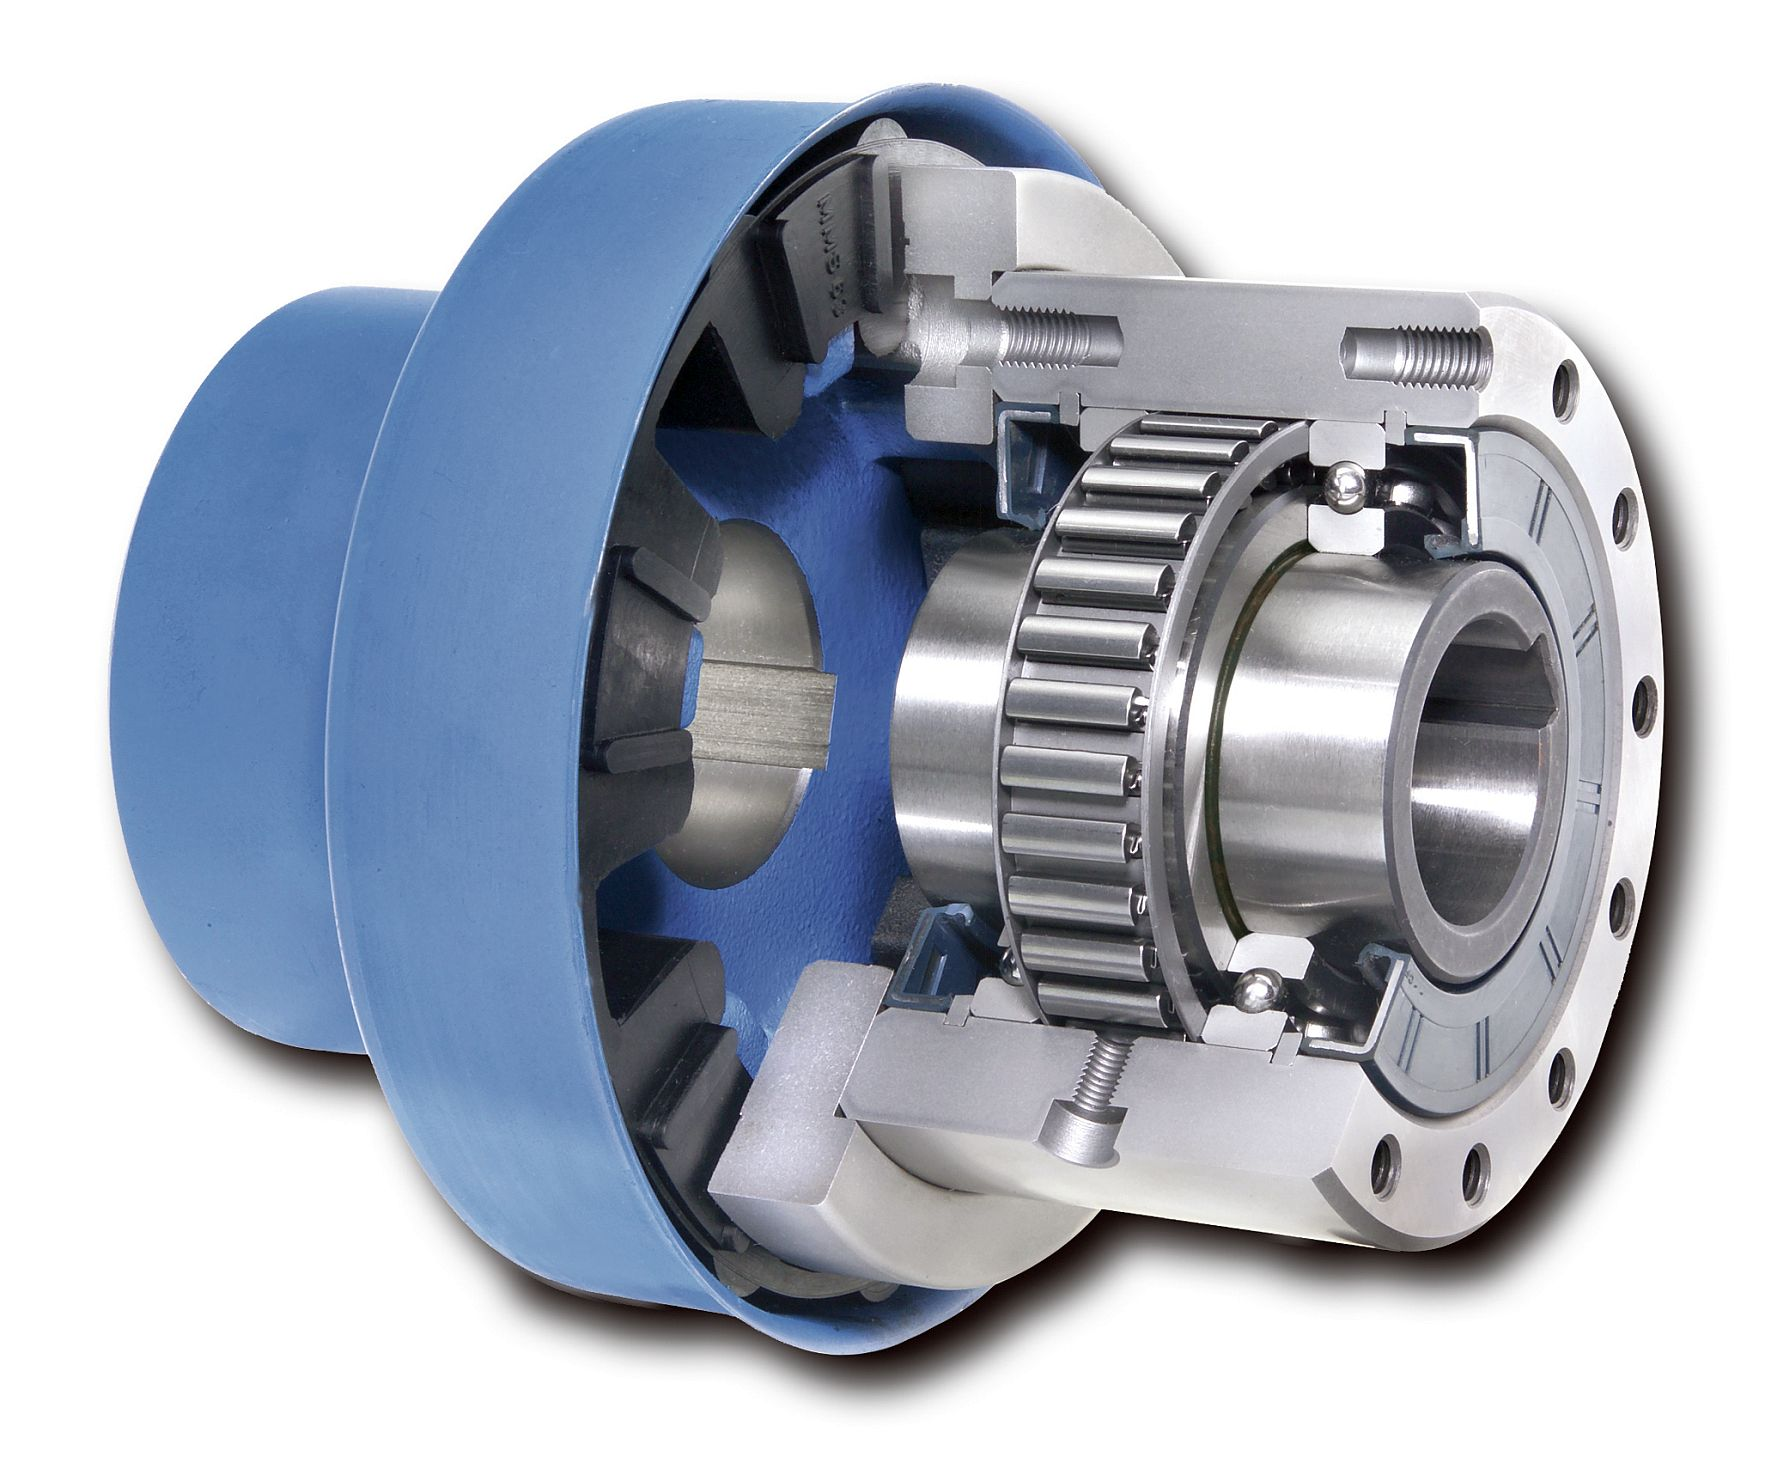 complete freewheels FBE and FBL from RINGSPANN